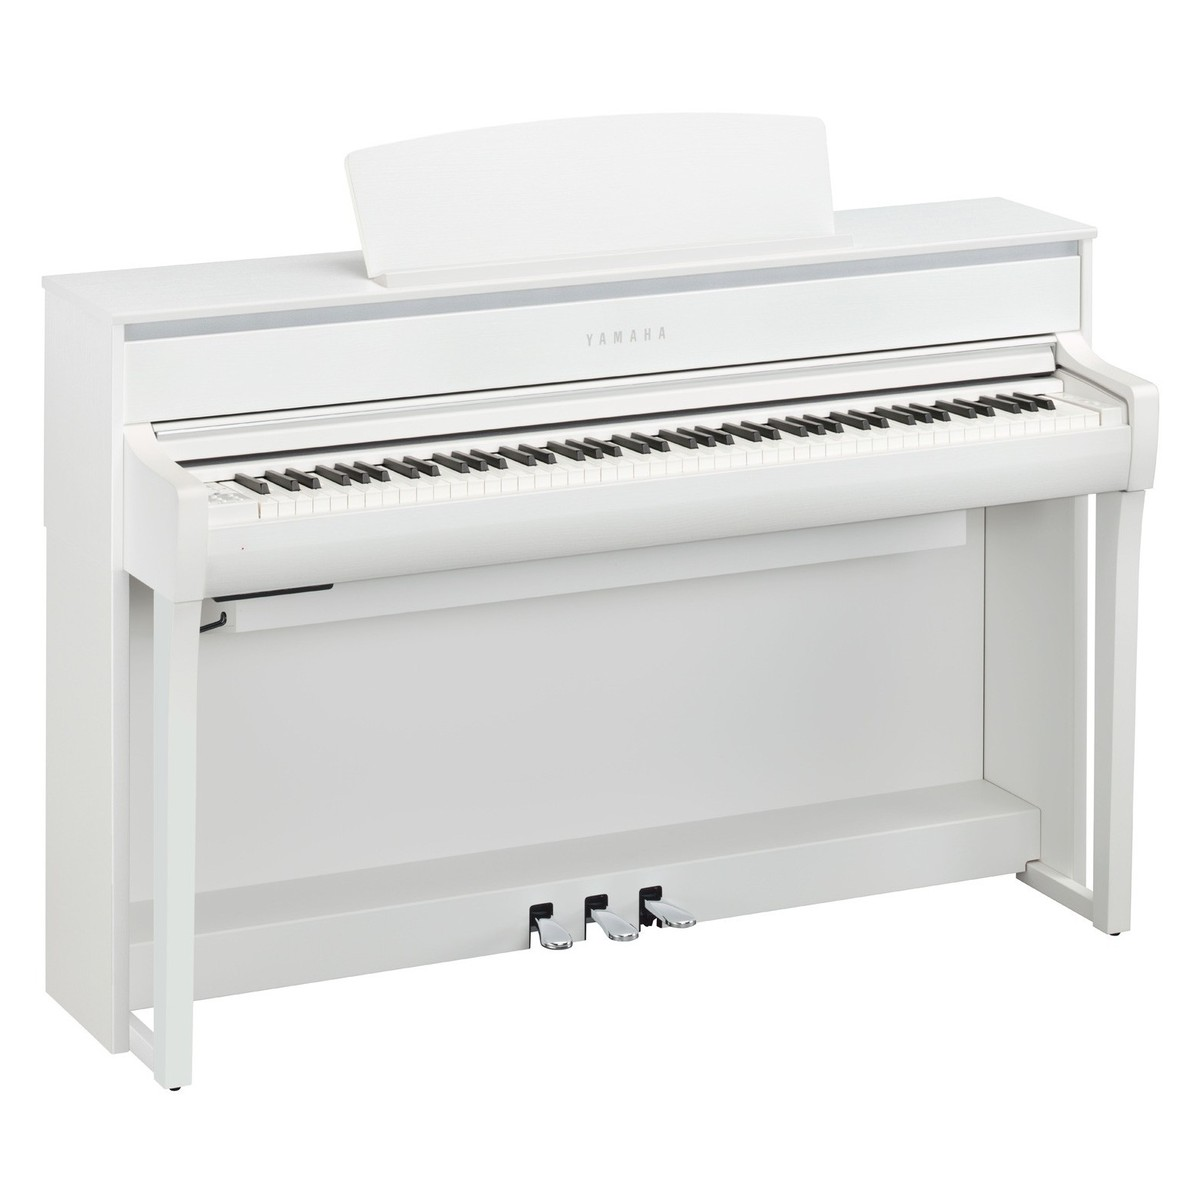 Yamaha clp 675 digital piano white at for Yamaha digital piano dealers